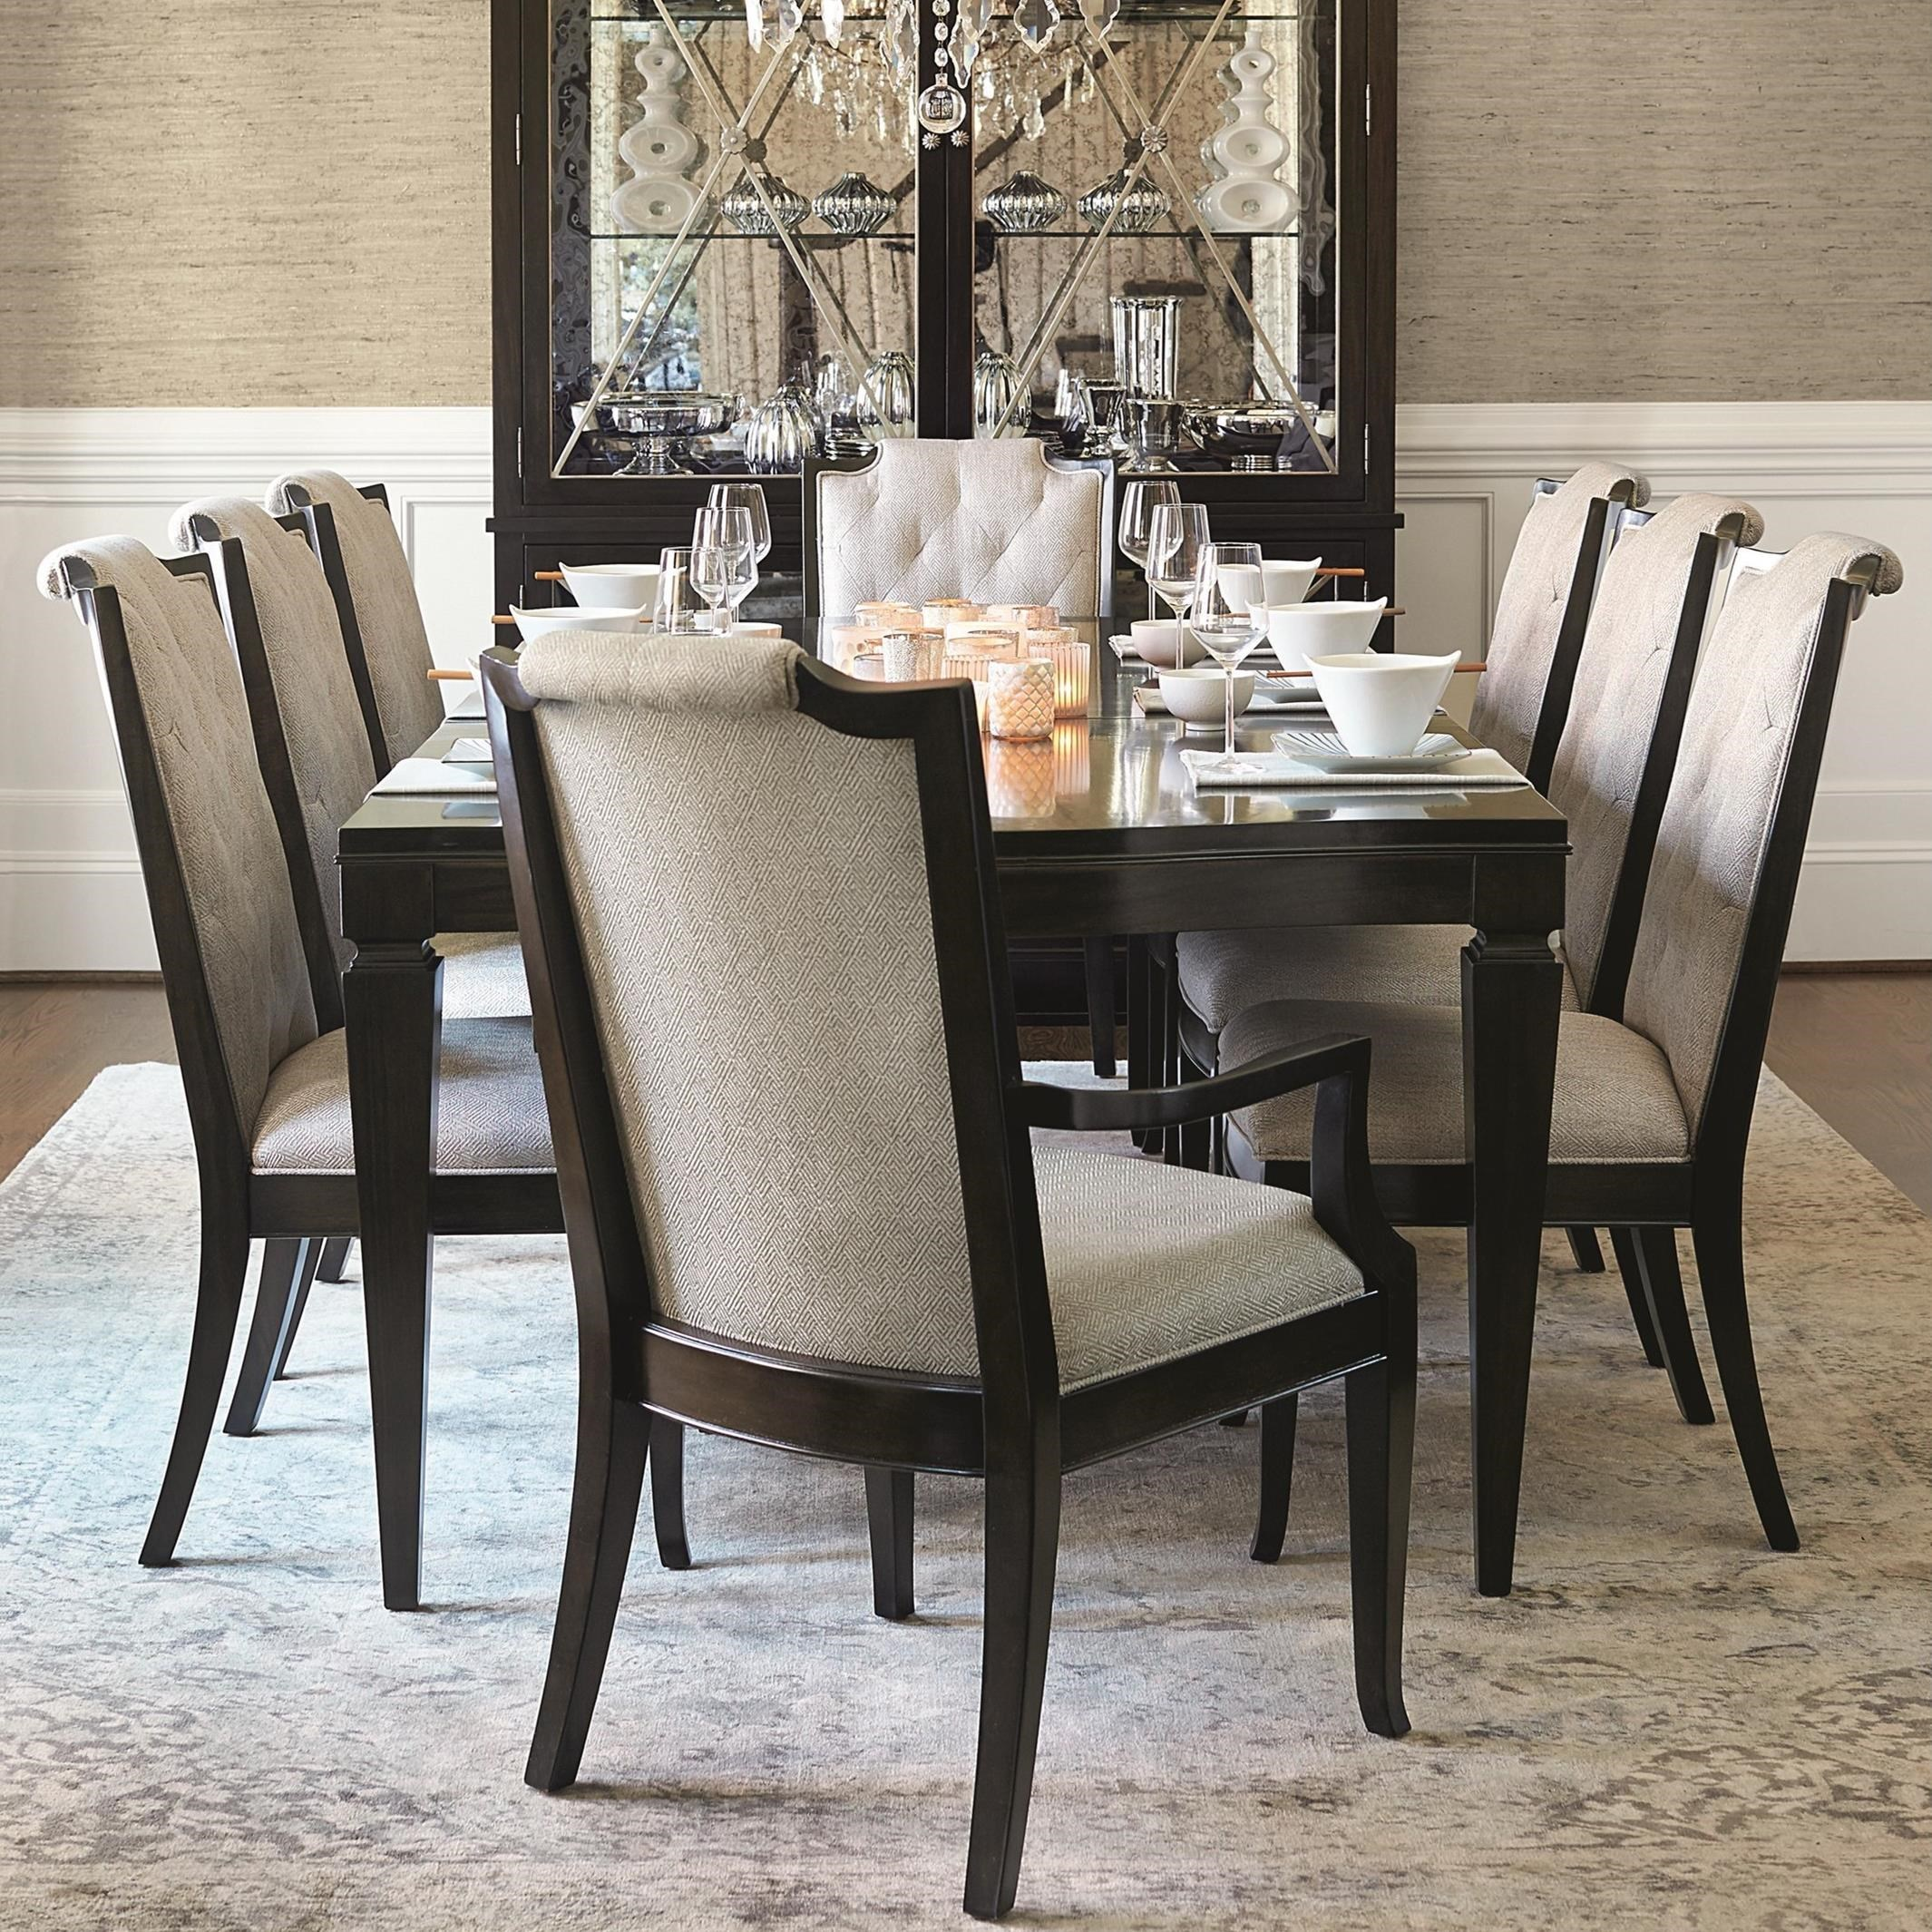 Medium image of bernhardt sutton house 9 piece dining set with upholstered chairs